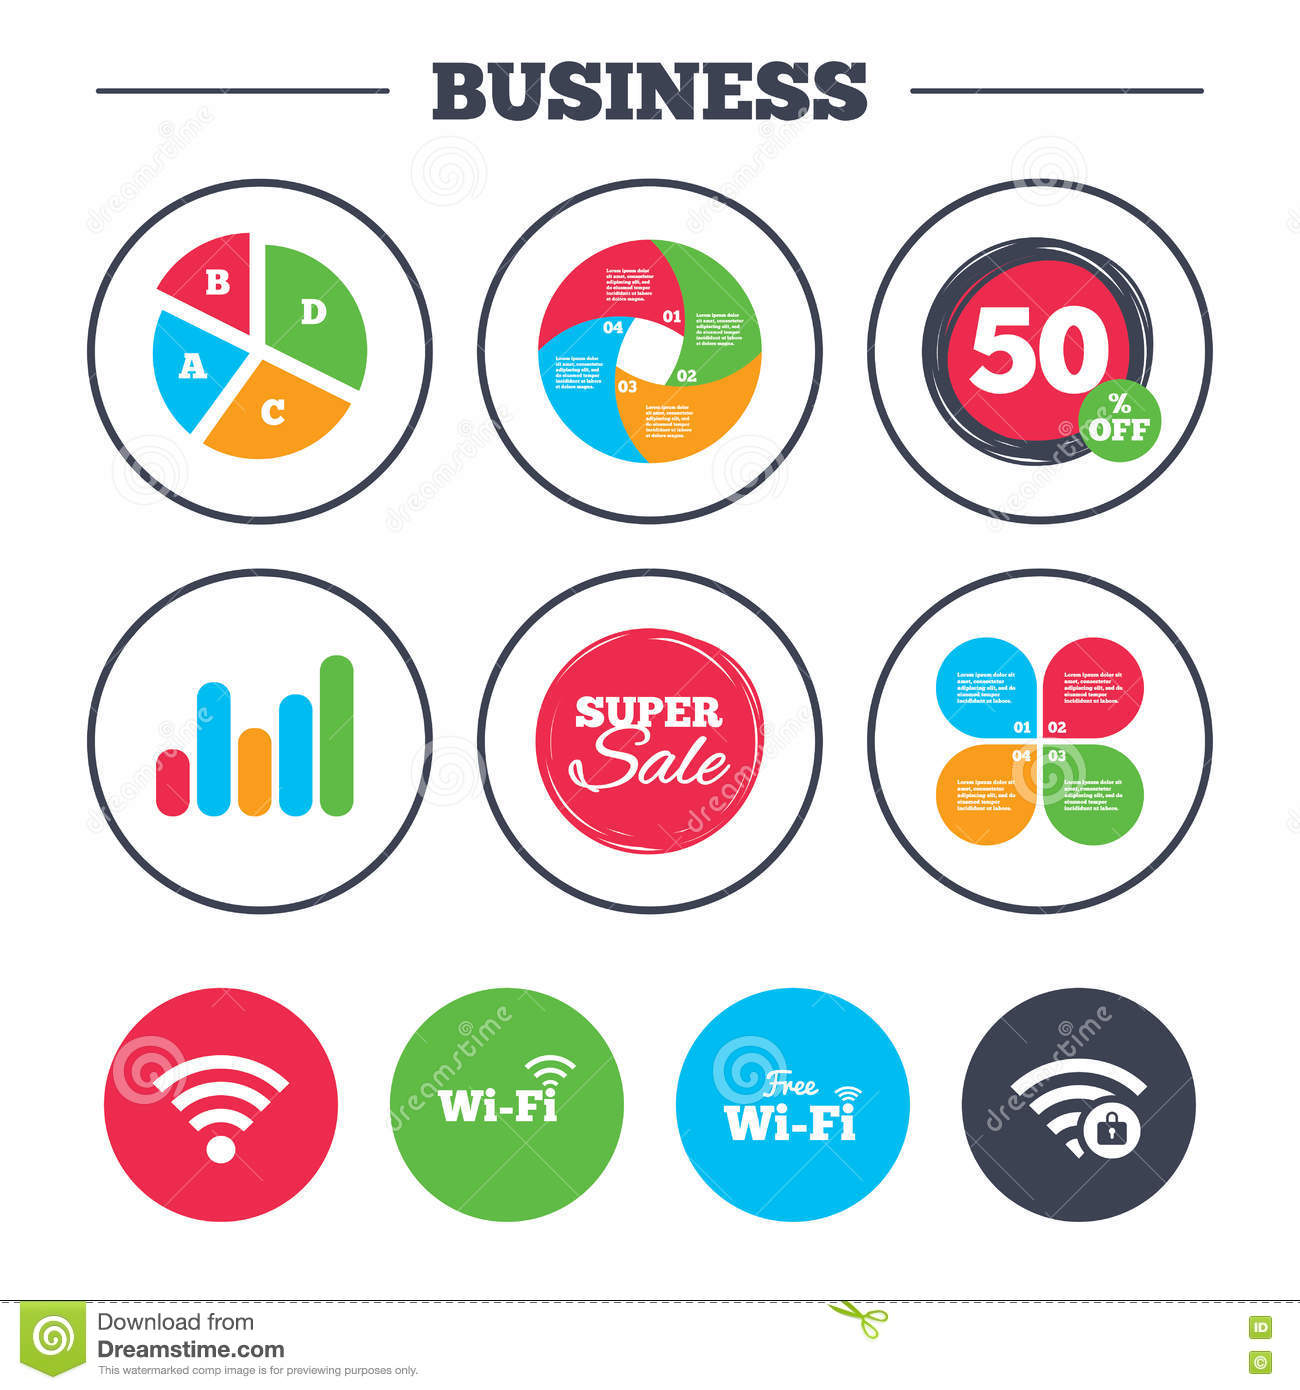 hight resolution of business wireless network diagram